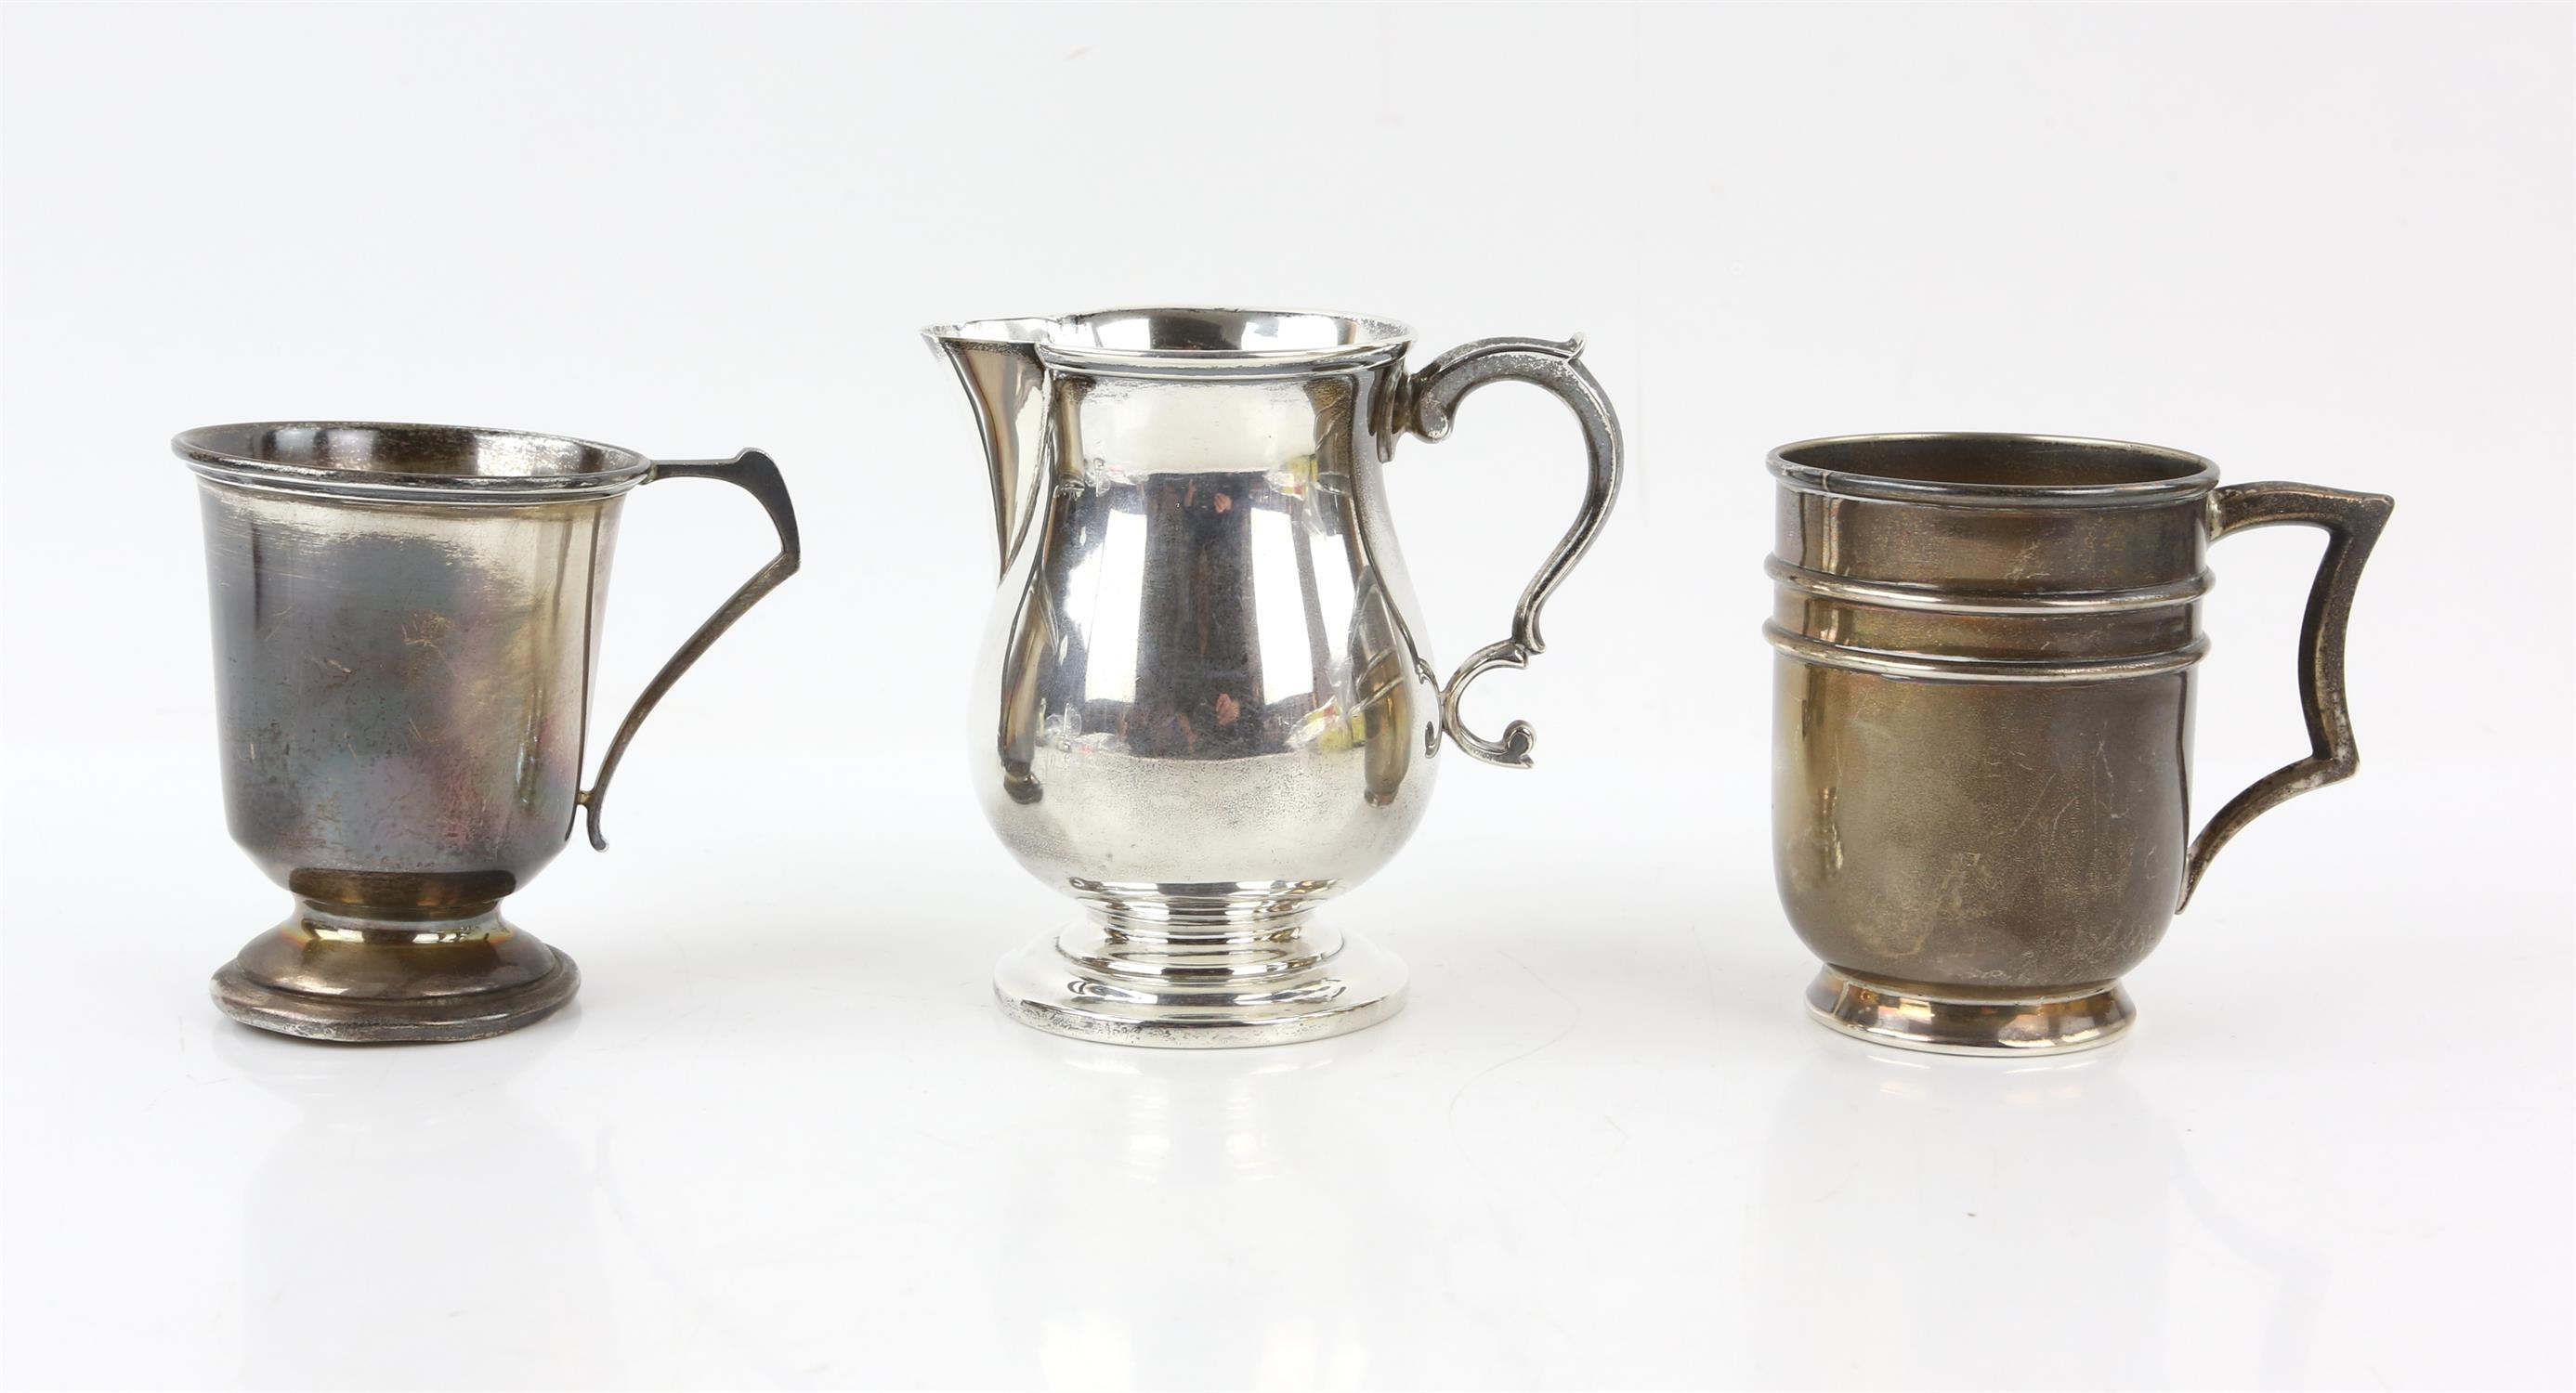 Edward VII silver cream jug with 'S'-scroll handle on round foot, by Ackroyd Rhodes, London, 1904,